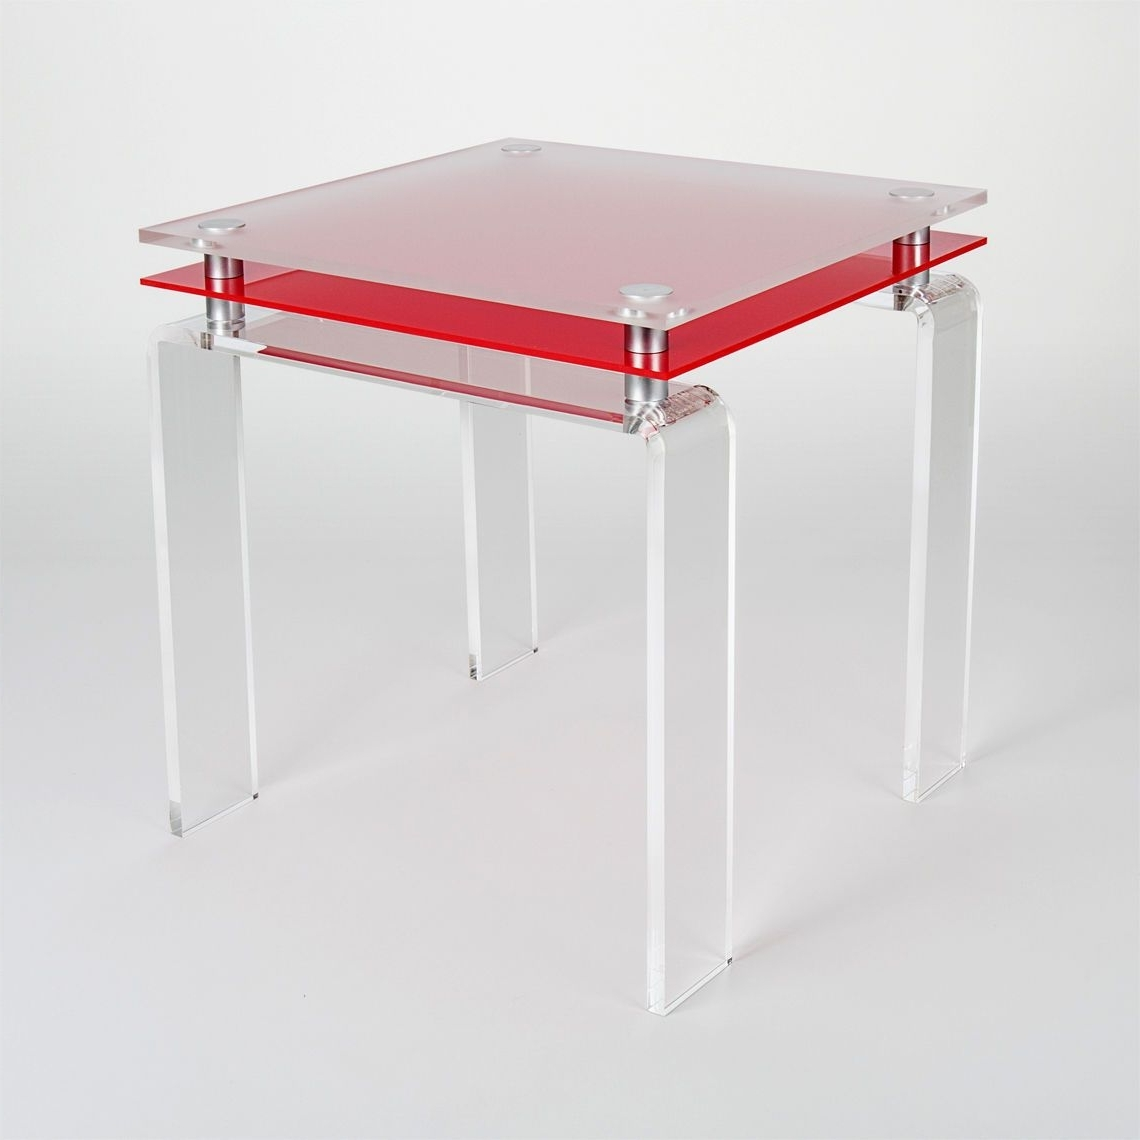 Modern Acrylic Coffee Table Pertaining To Recent Modern Acrylic Coffee Tables (View 14 of 20)